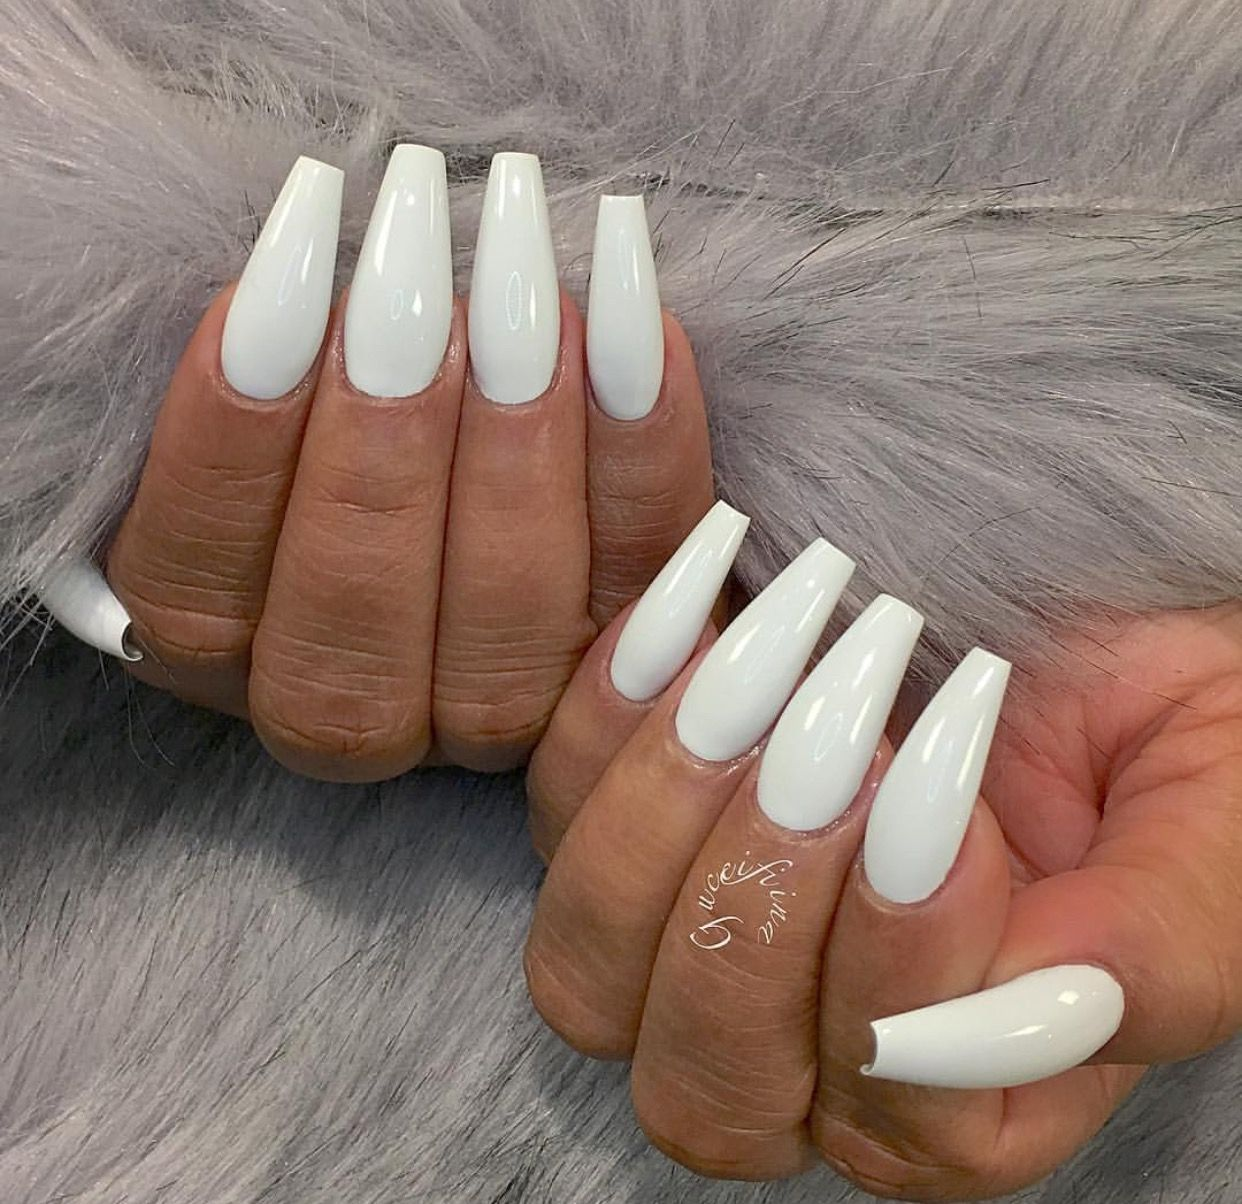 Pin by Kat Staxx on Nail\'d It!   Pinterest   White manicure, Double ...